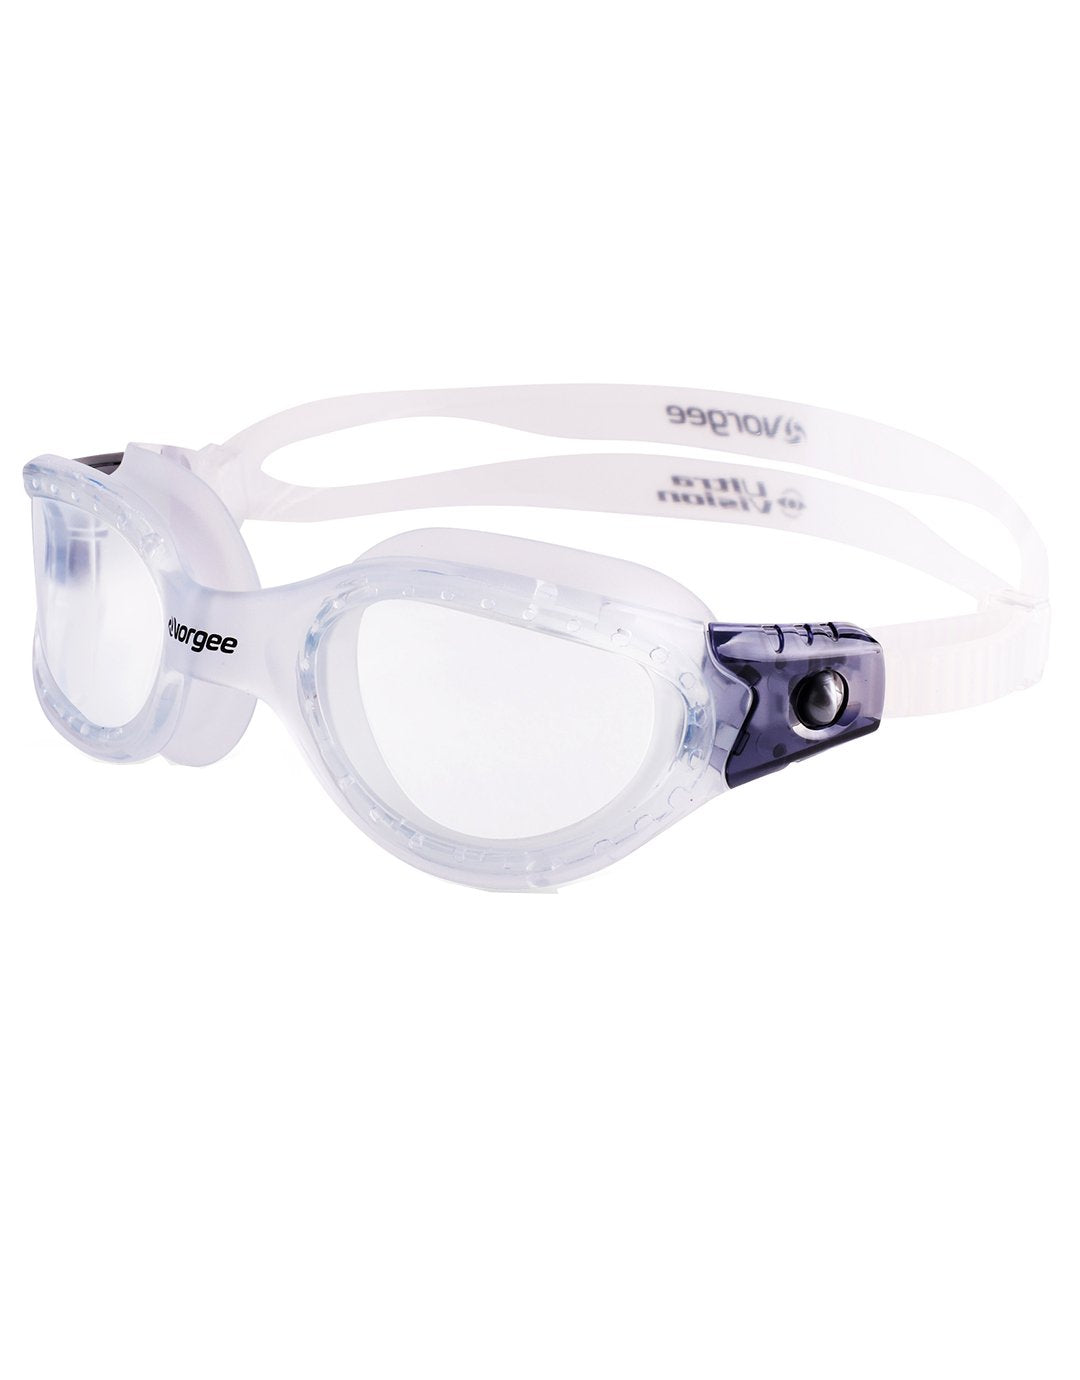 585648cce77 ... Vorgee Vortech Max Clear Goggle - Clear Black